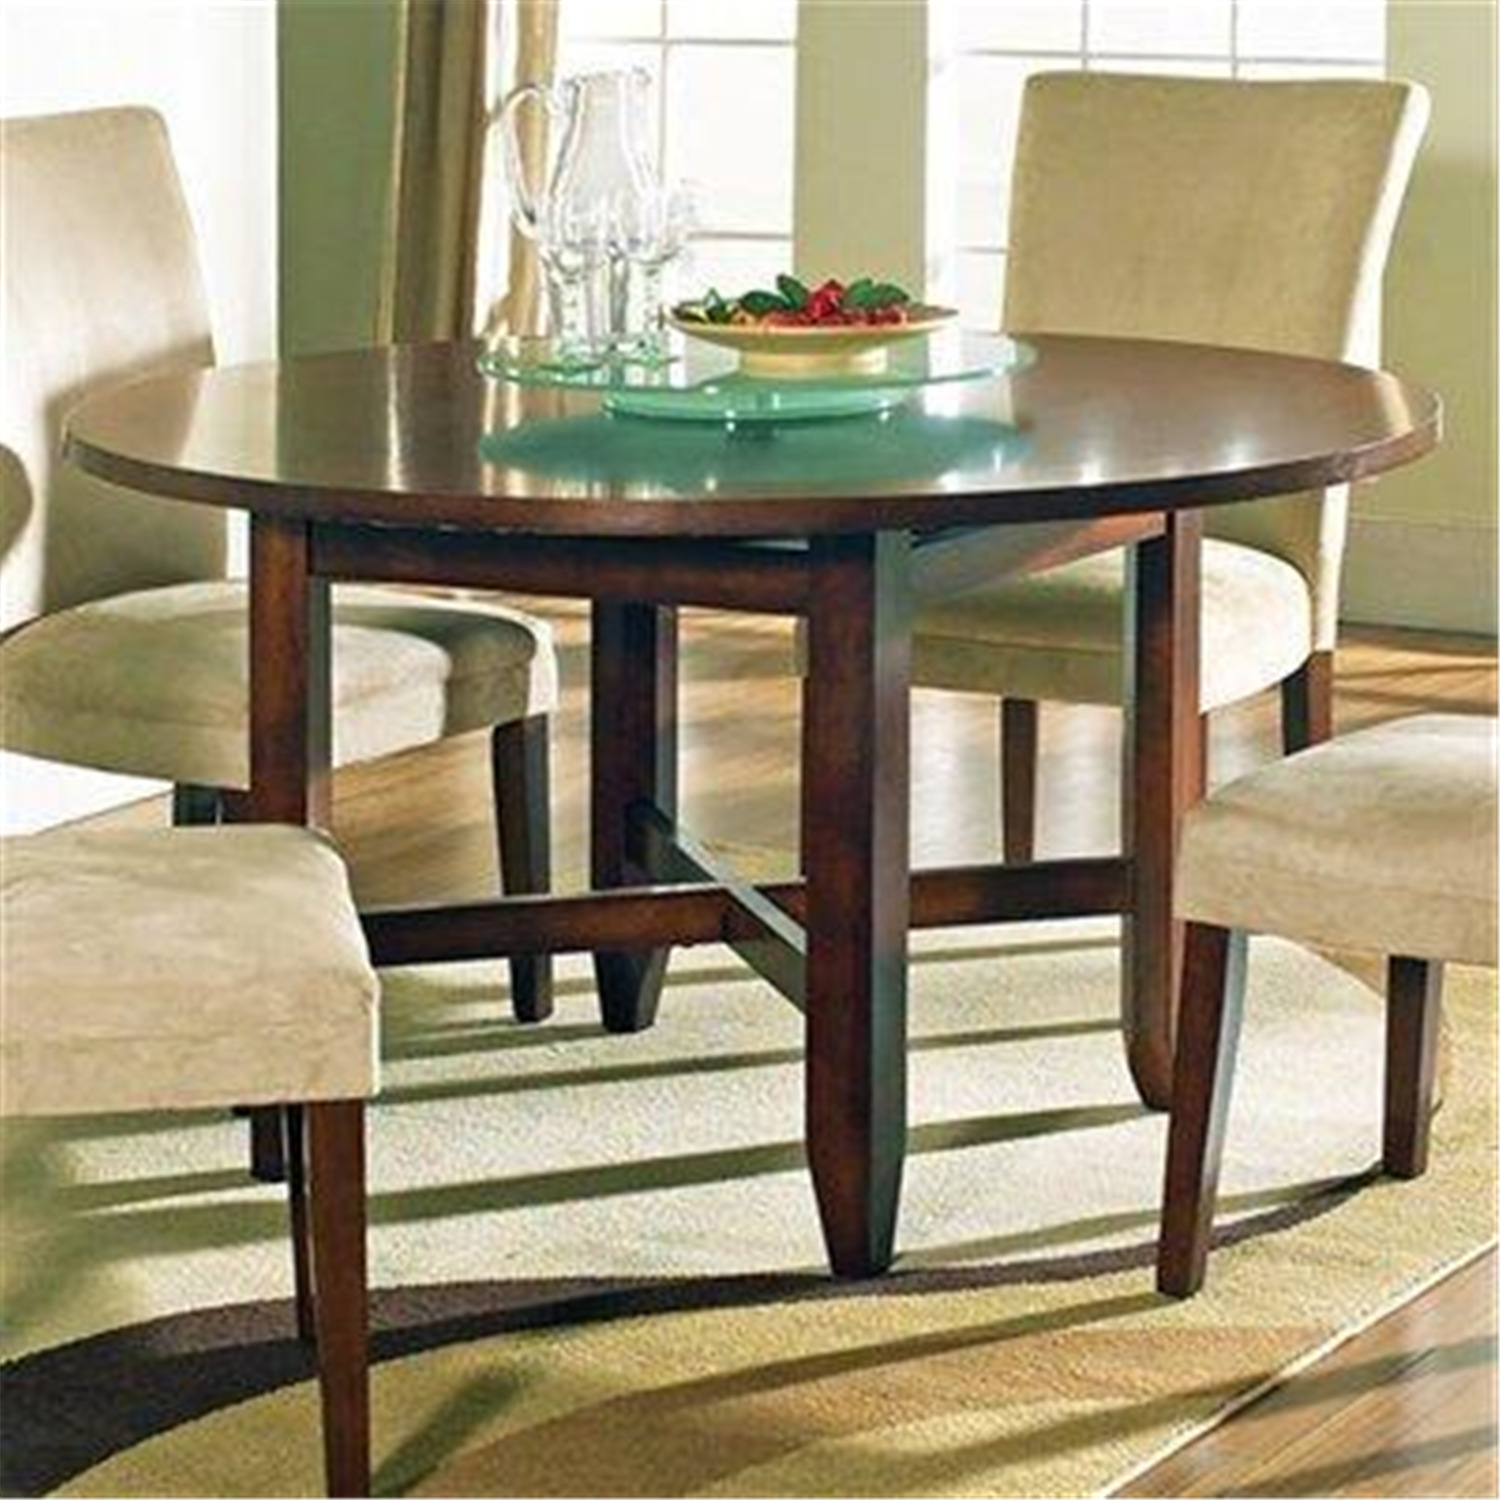 Dining table dress small dining table for Dining table dressing ideas